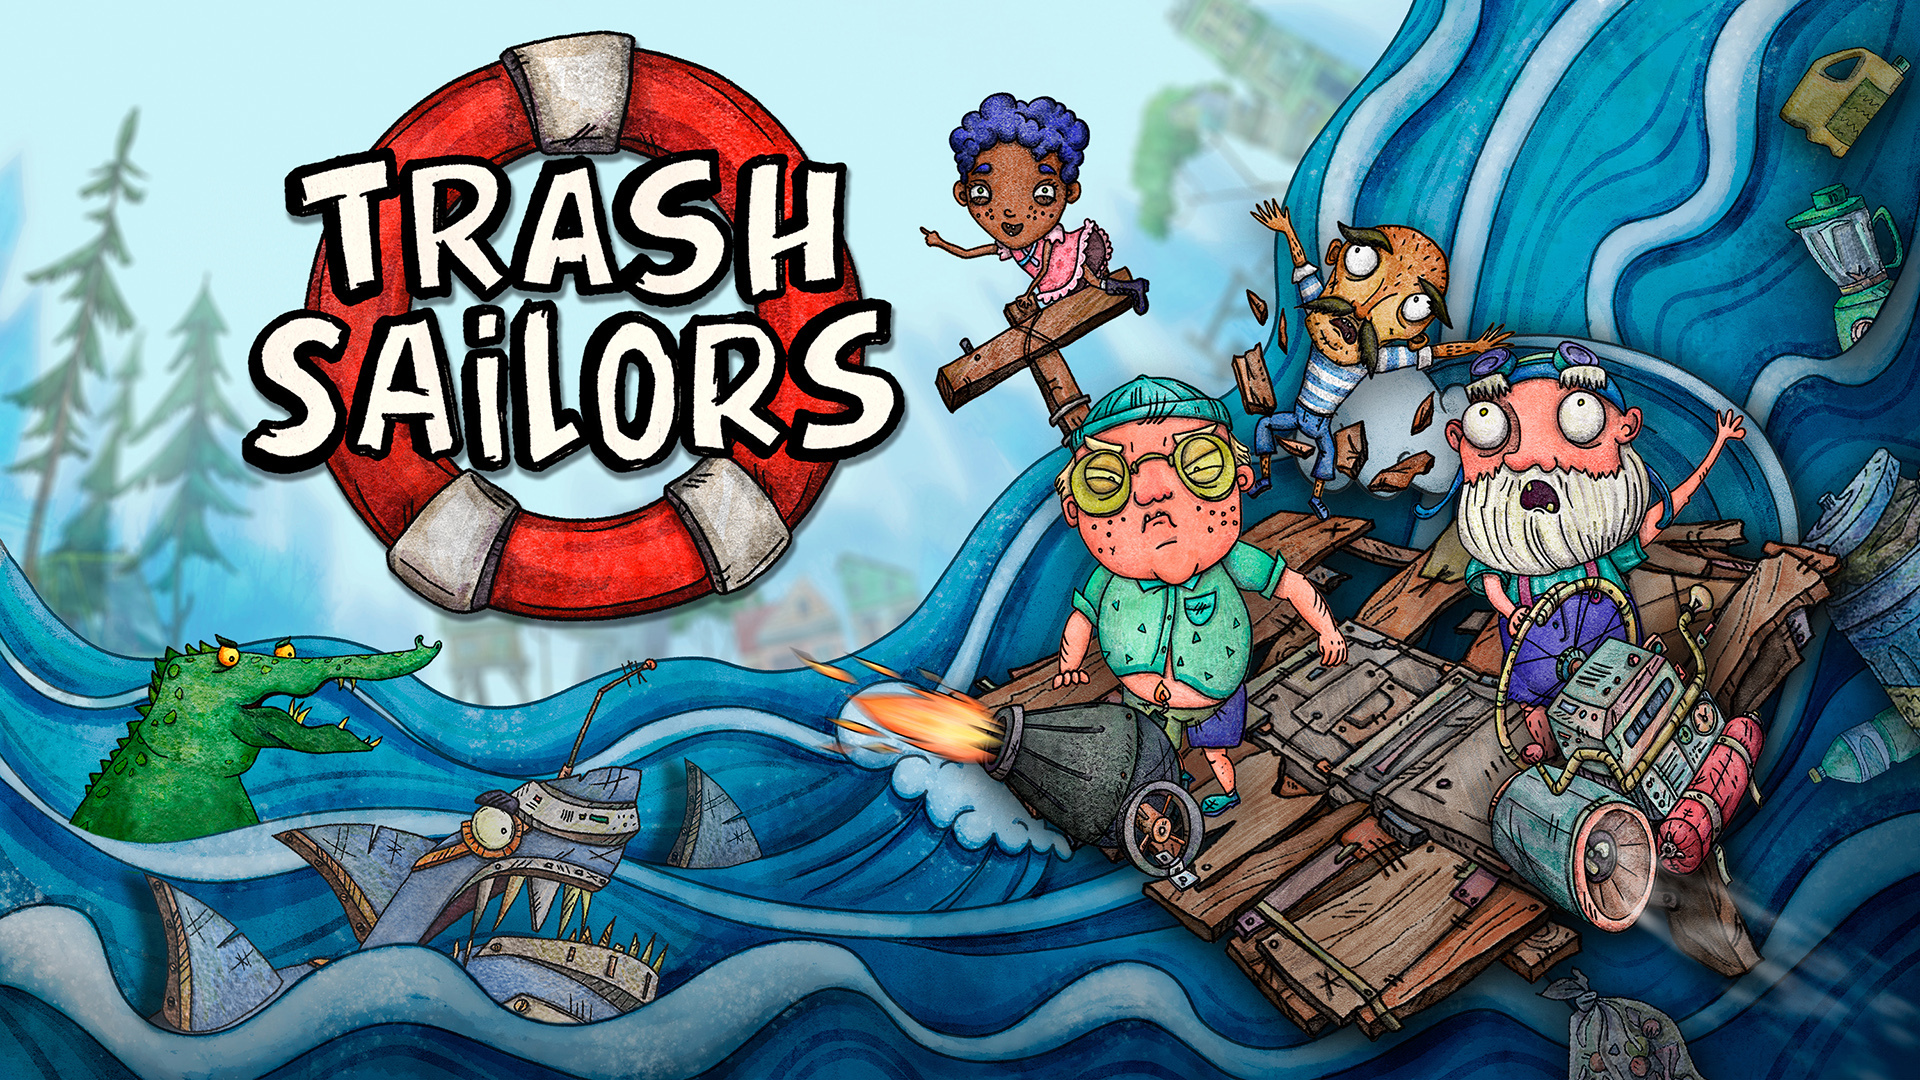 Trash Sailor é anunciado finalmente para Nintendo Switch 2